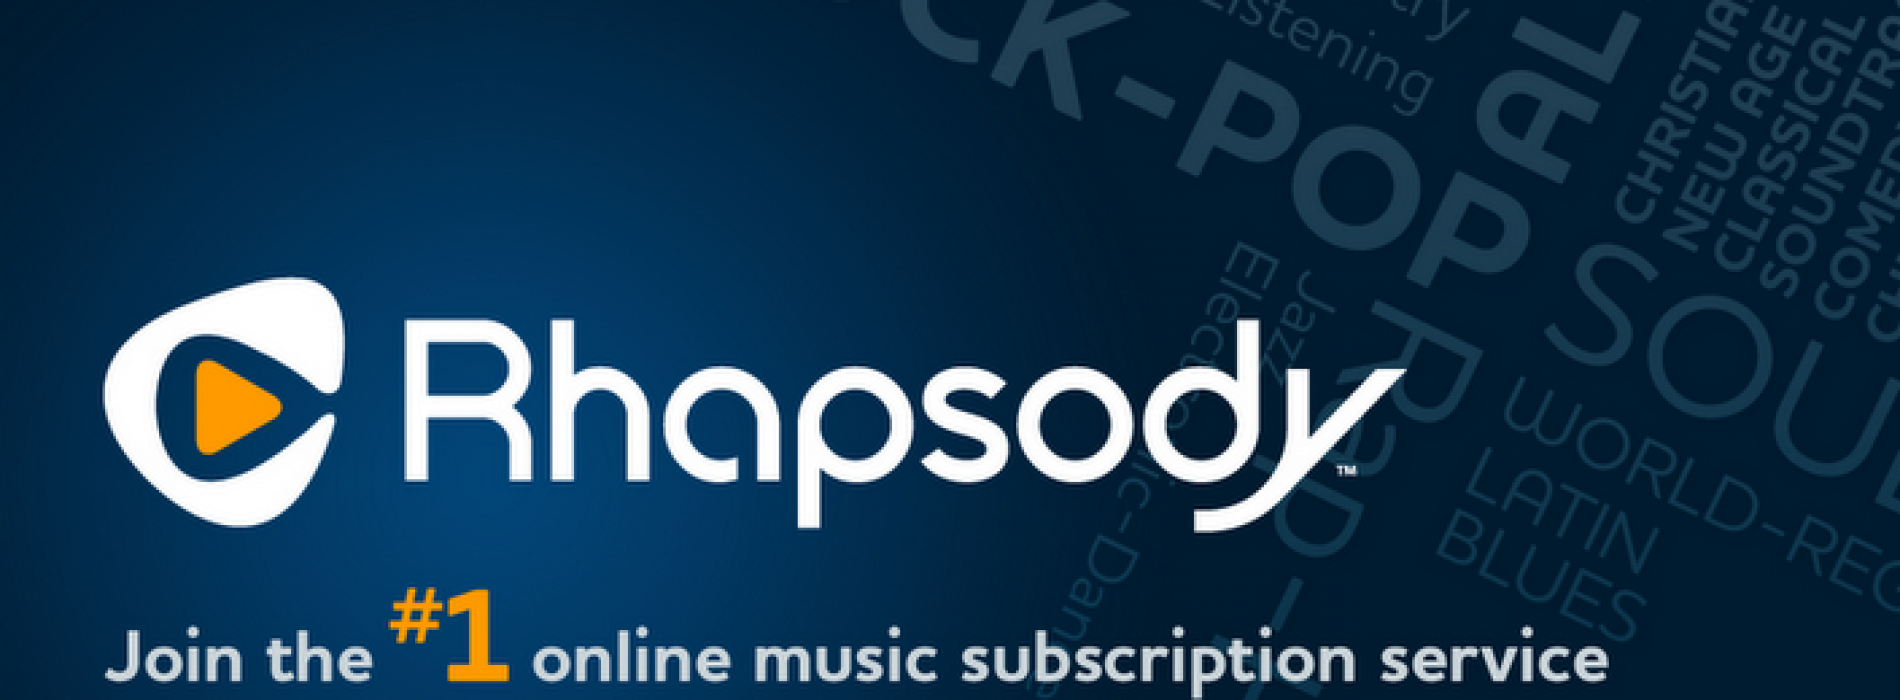 Rhapsody Android app gets an update